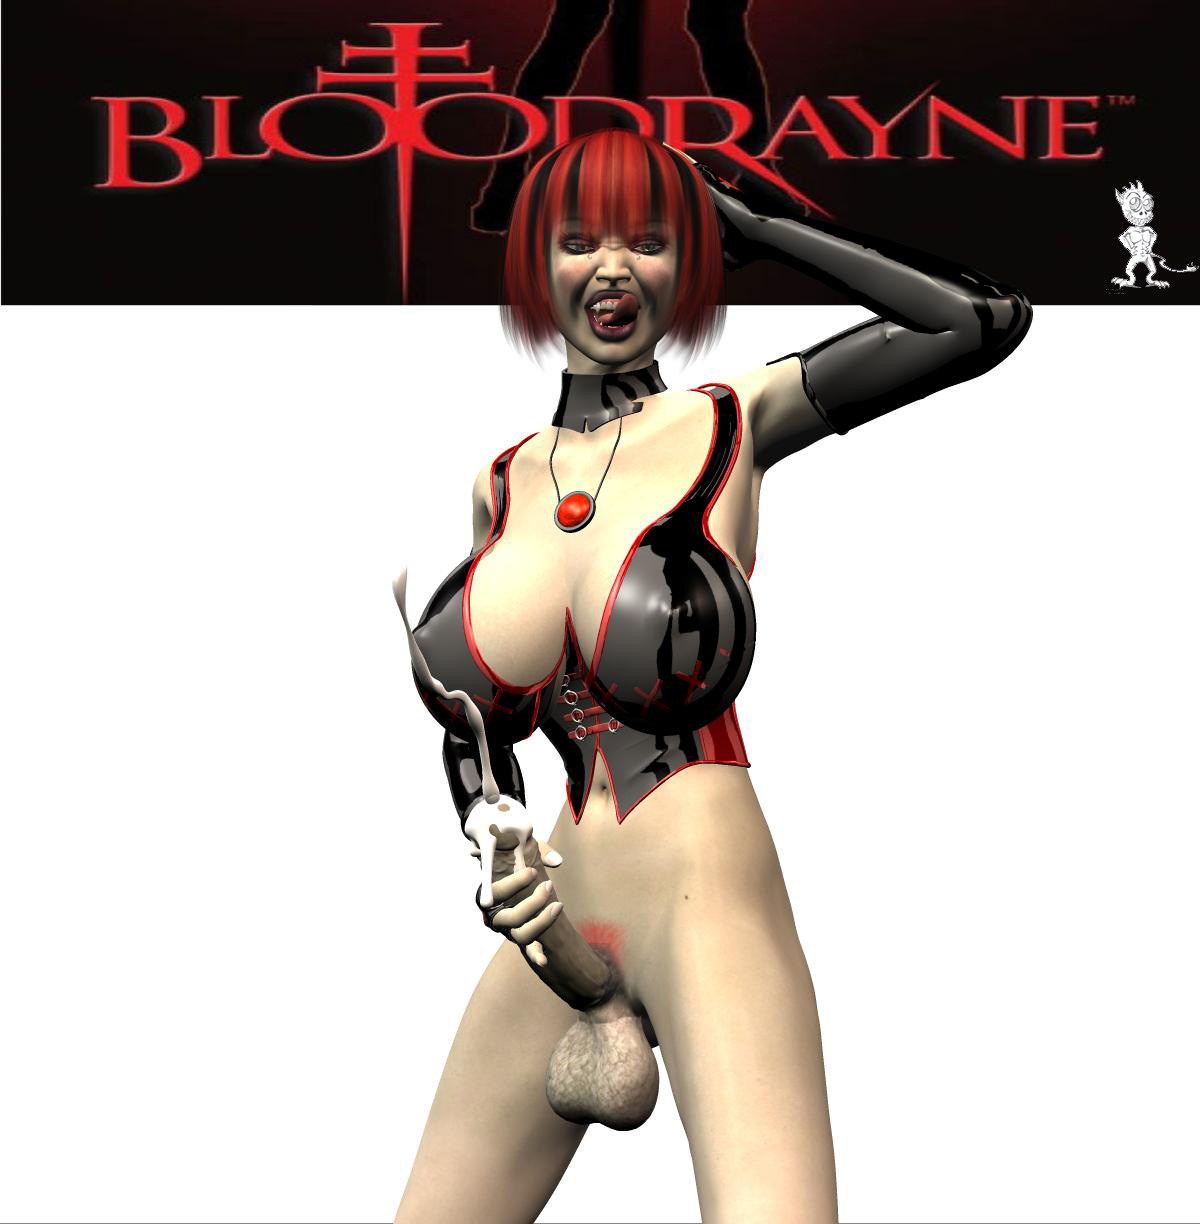 Bloodrayne 3d sex xxx usa slut